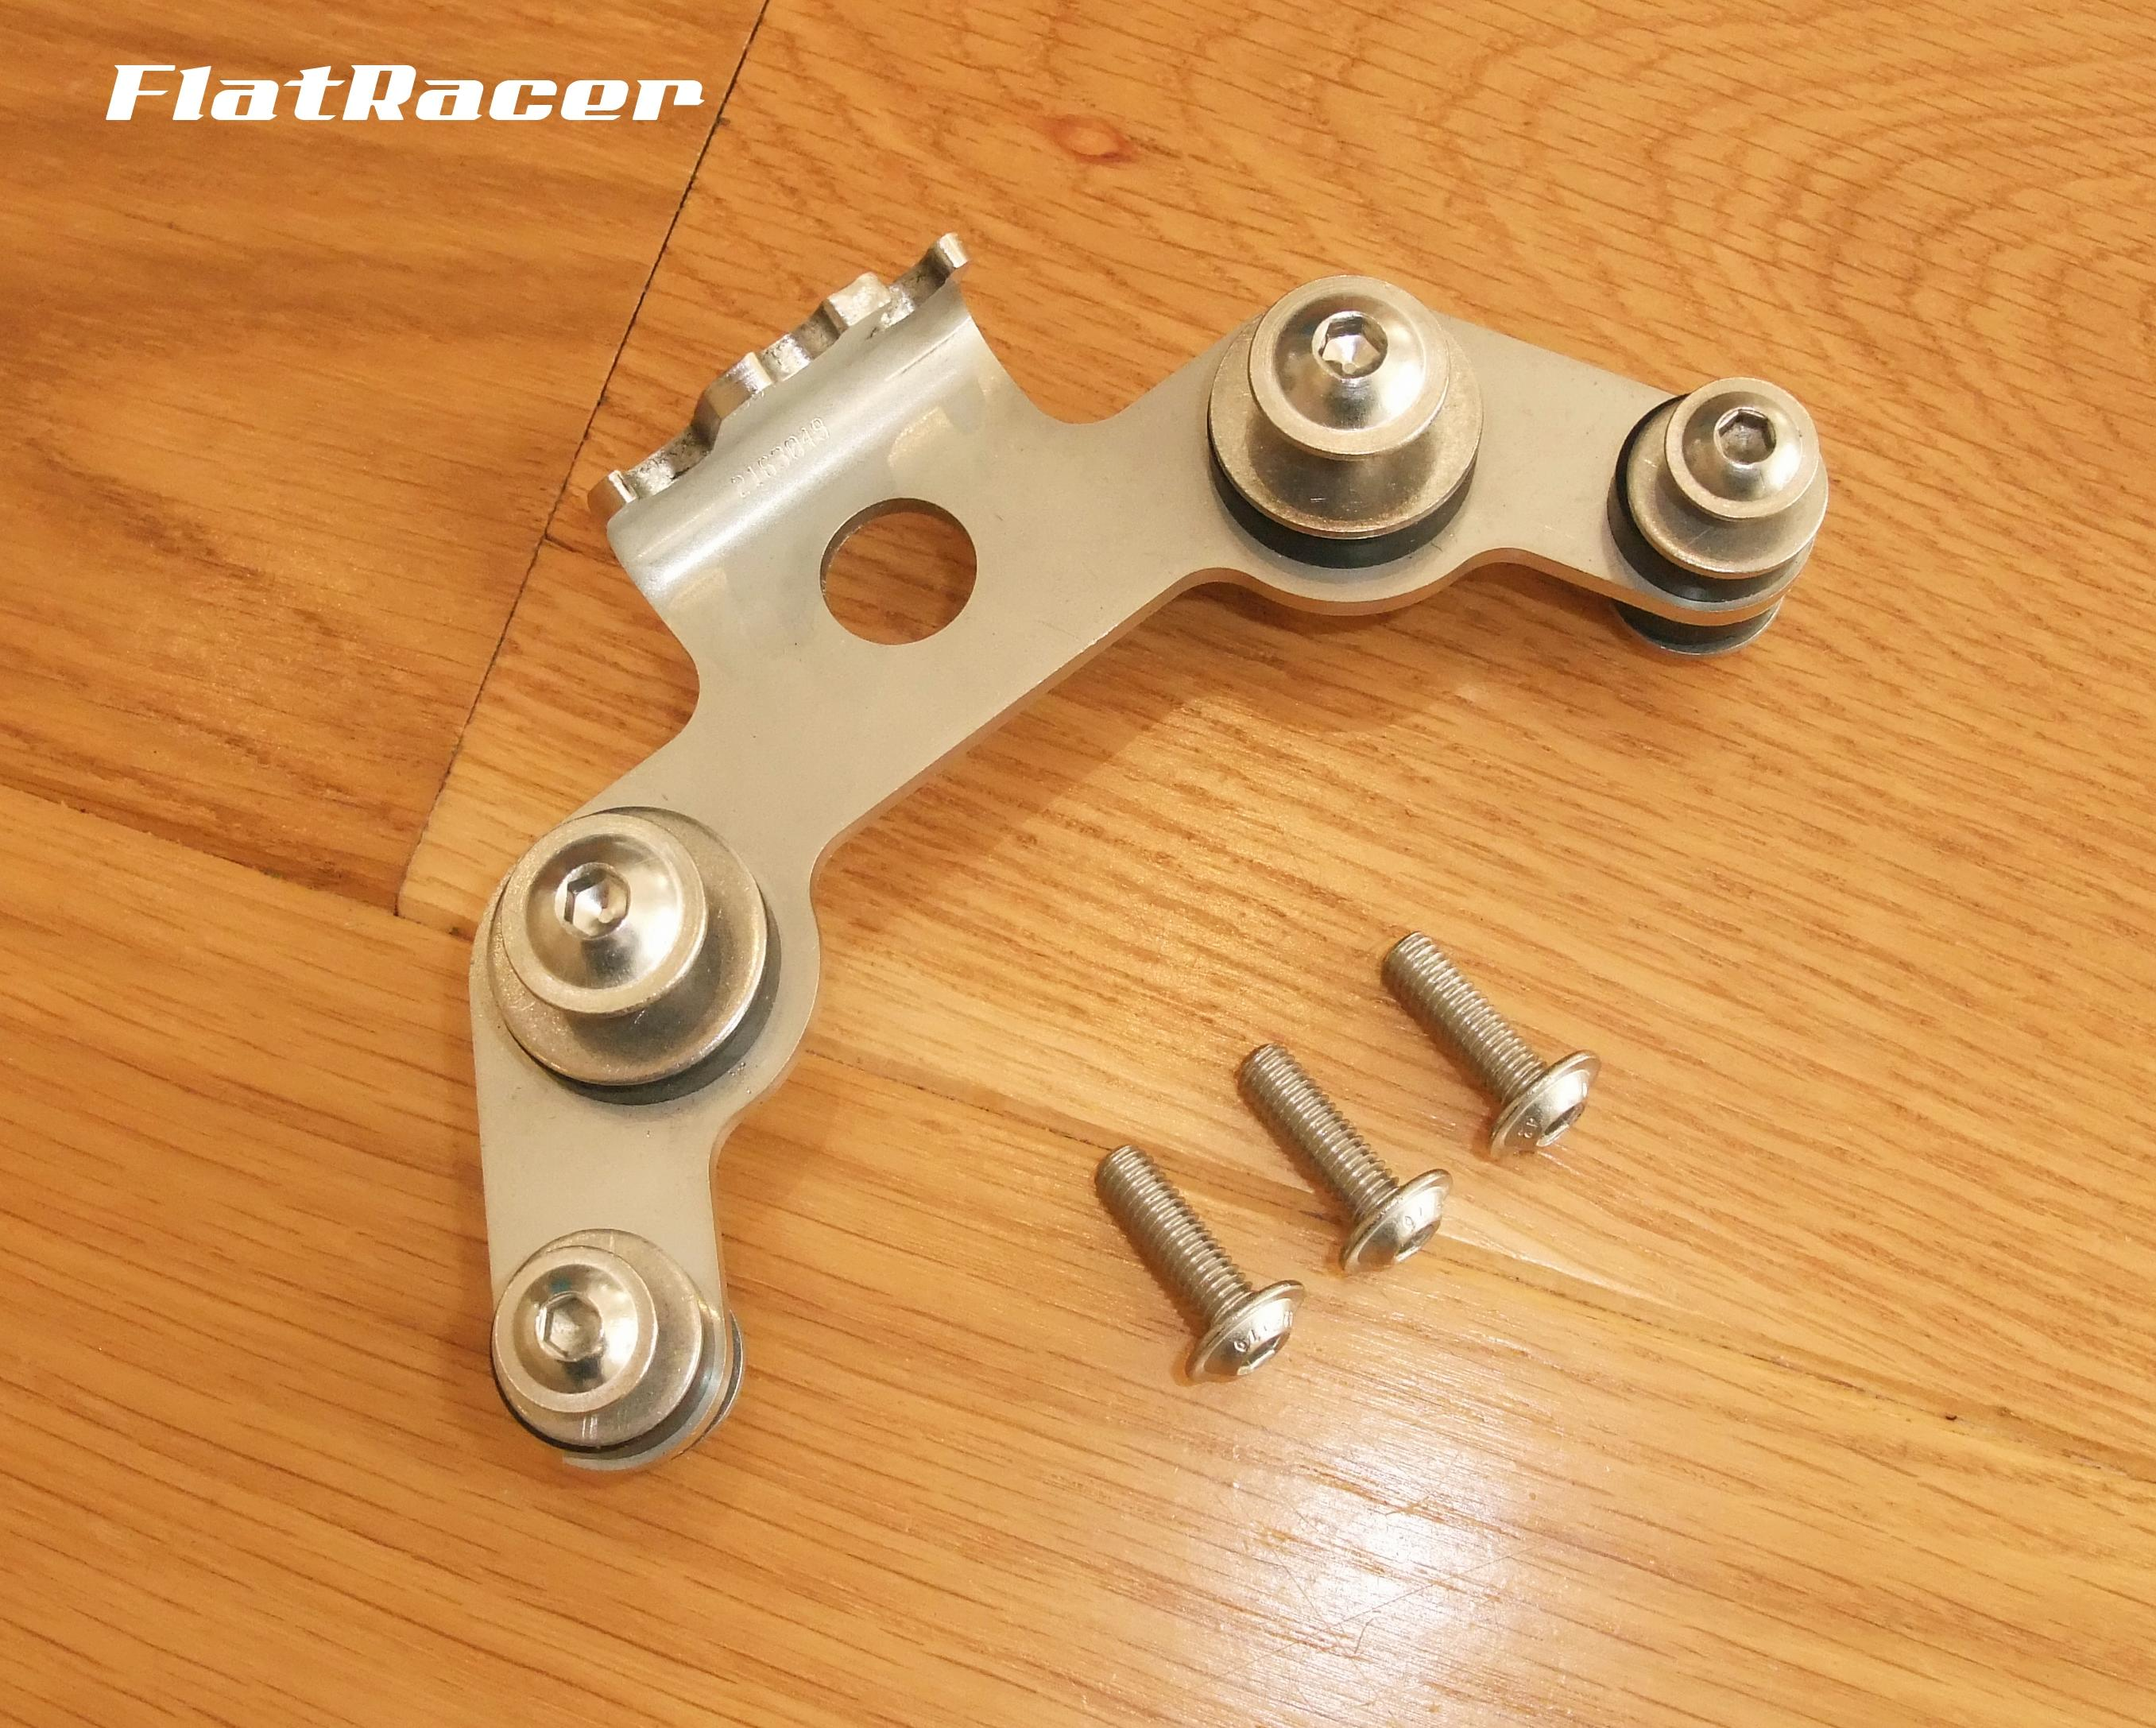 FlatRacer BMW Airhead Boxer stainless steel ultra-low instrument cluster bracket - with fittings